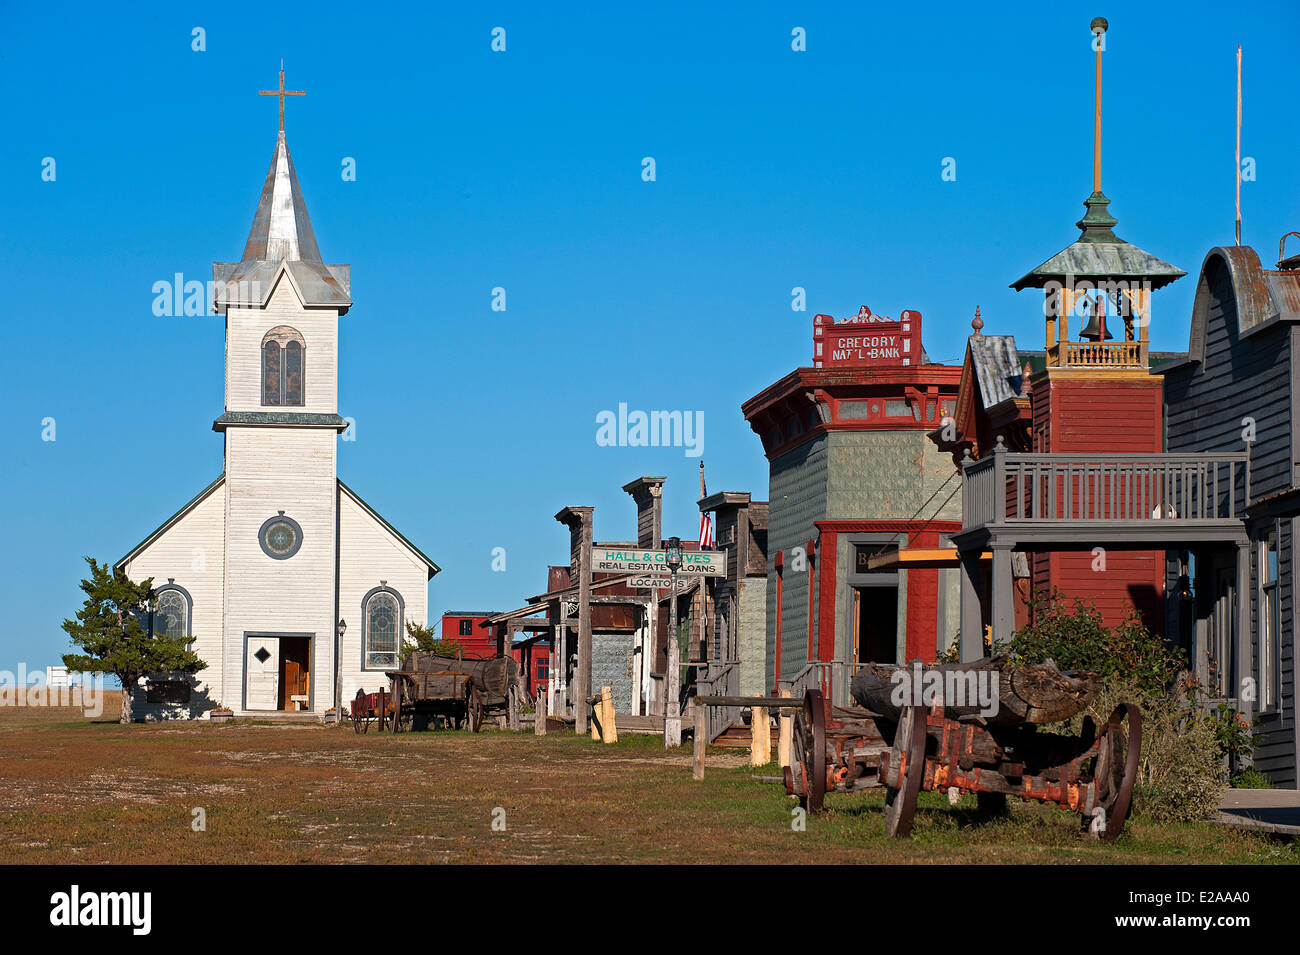 United States South Dakota The 1880 Town Consists Mainly